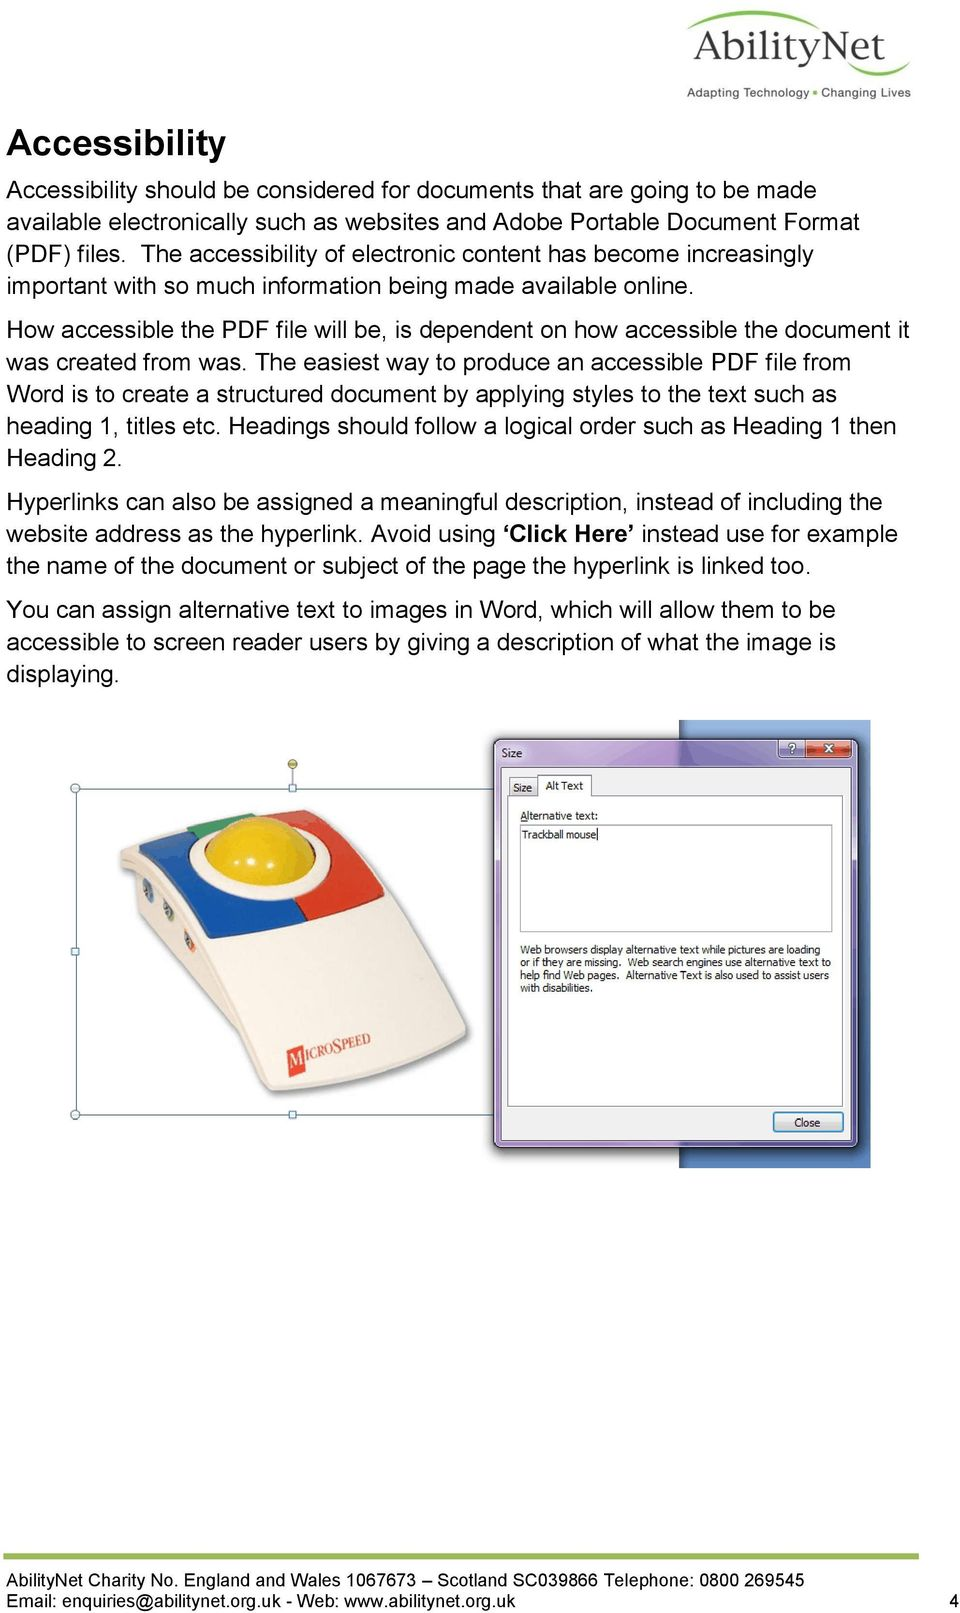 How accessible the PDF file will be, is dependent on how accessible the document it was created from was.